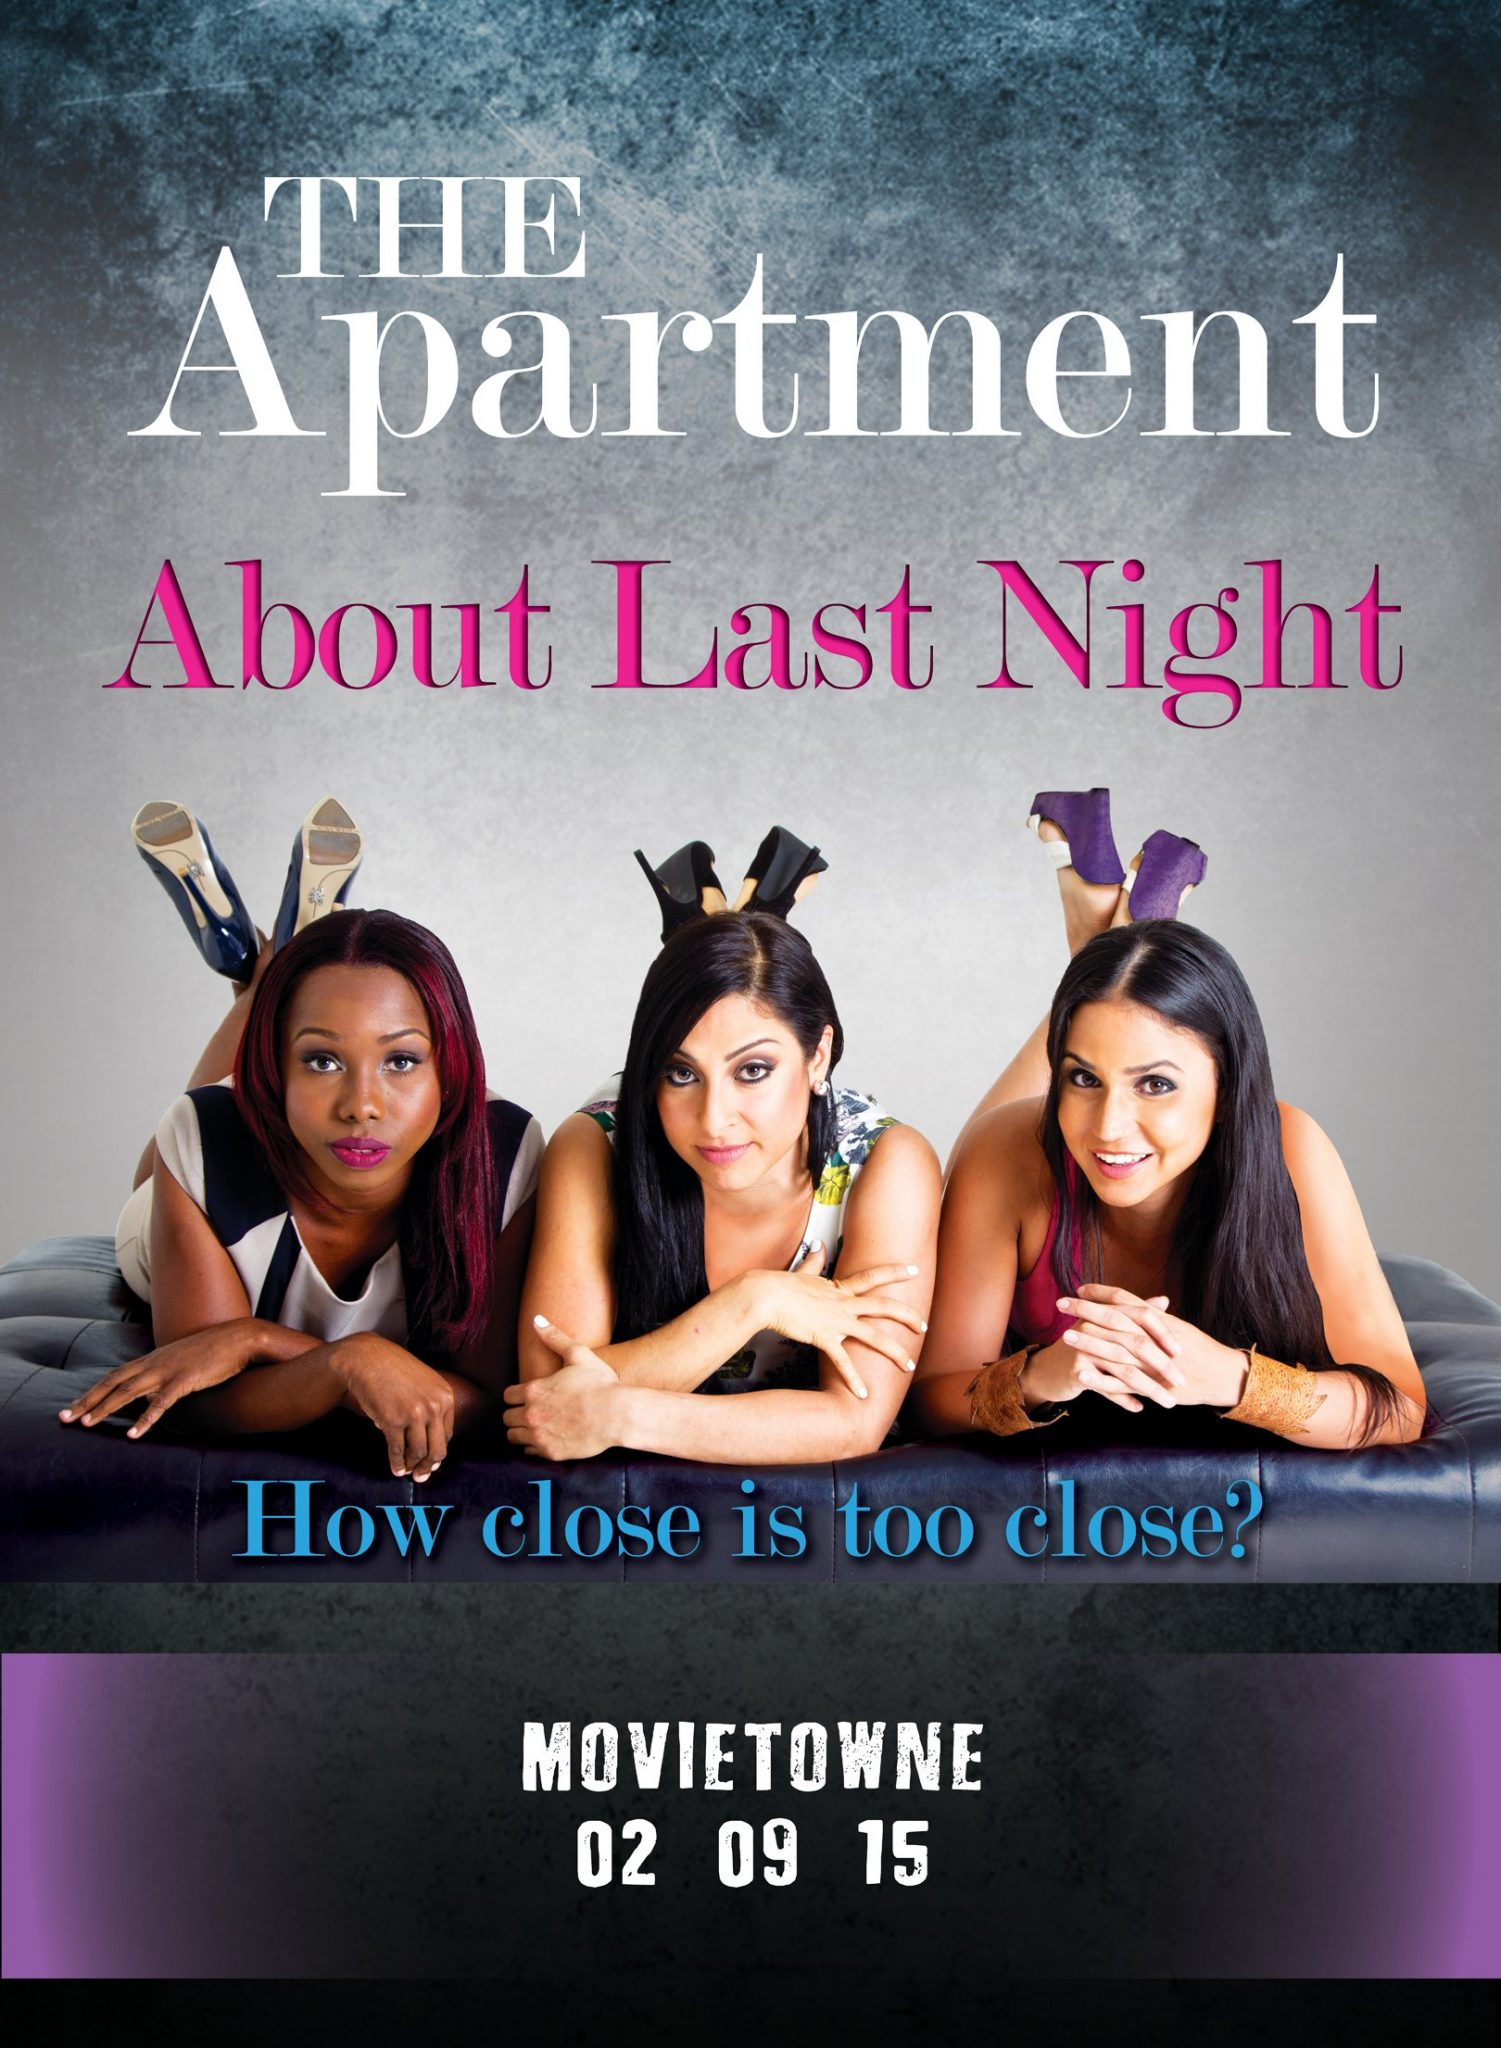 The apartment about last night to open at movie towne for The apartment cast